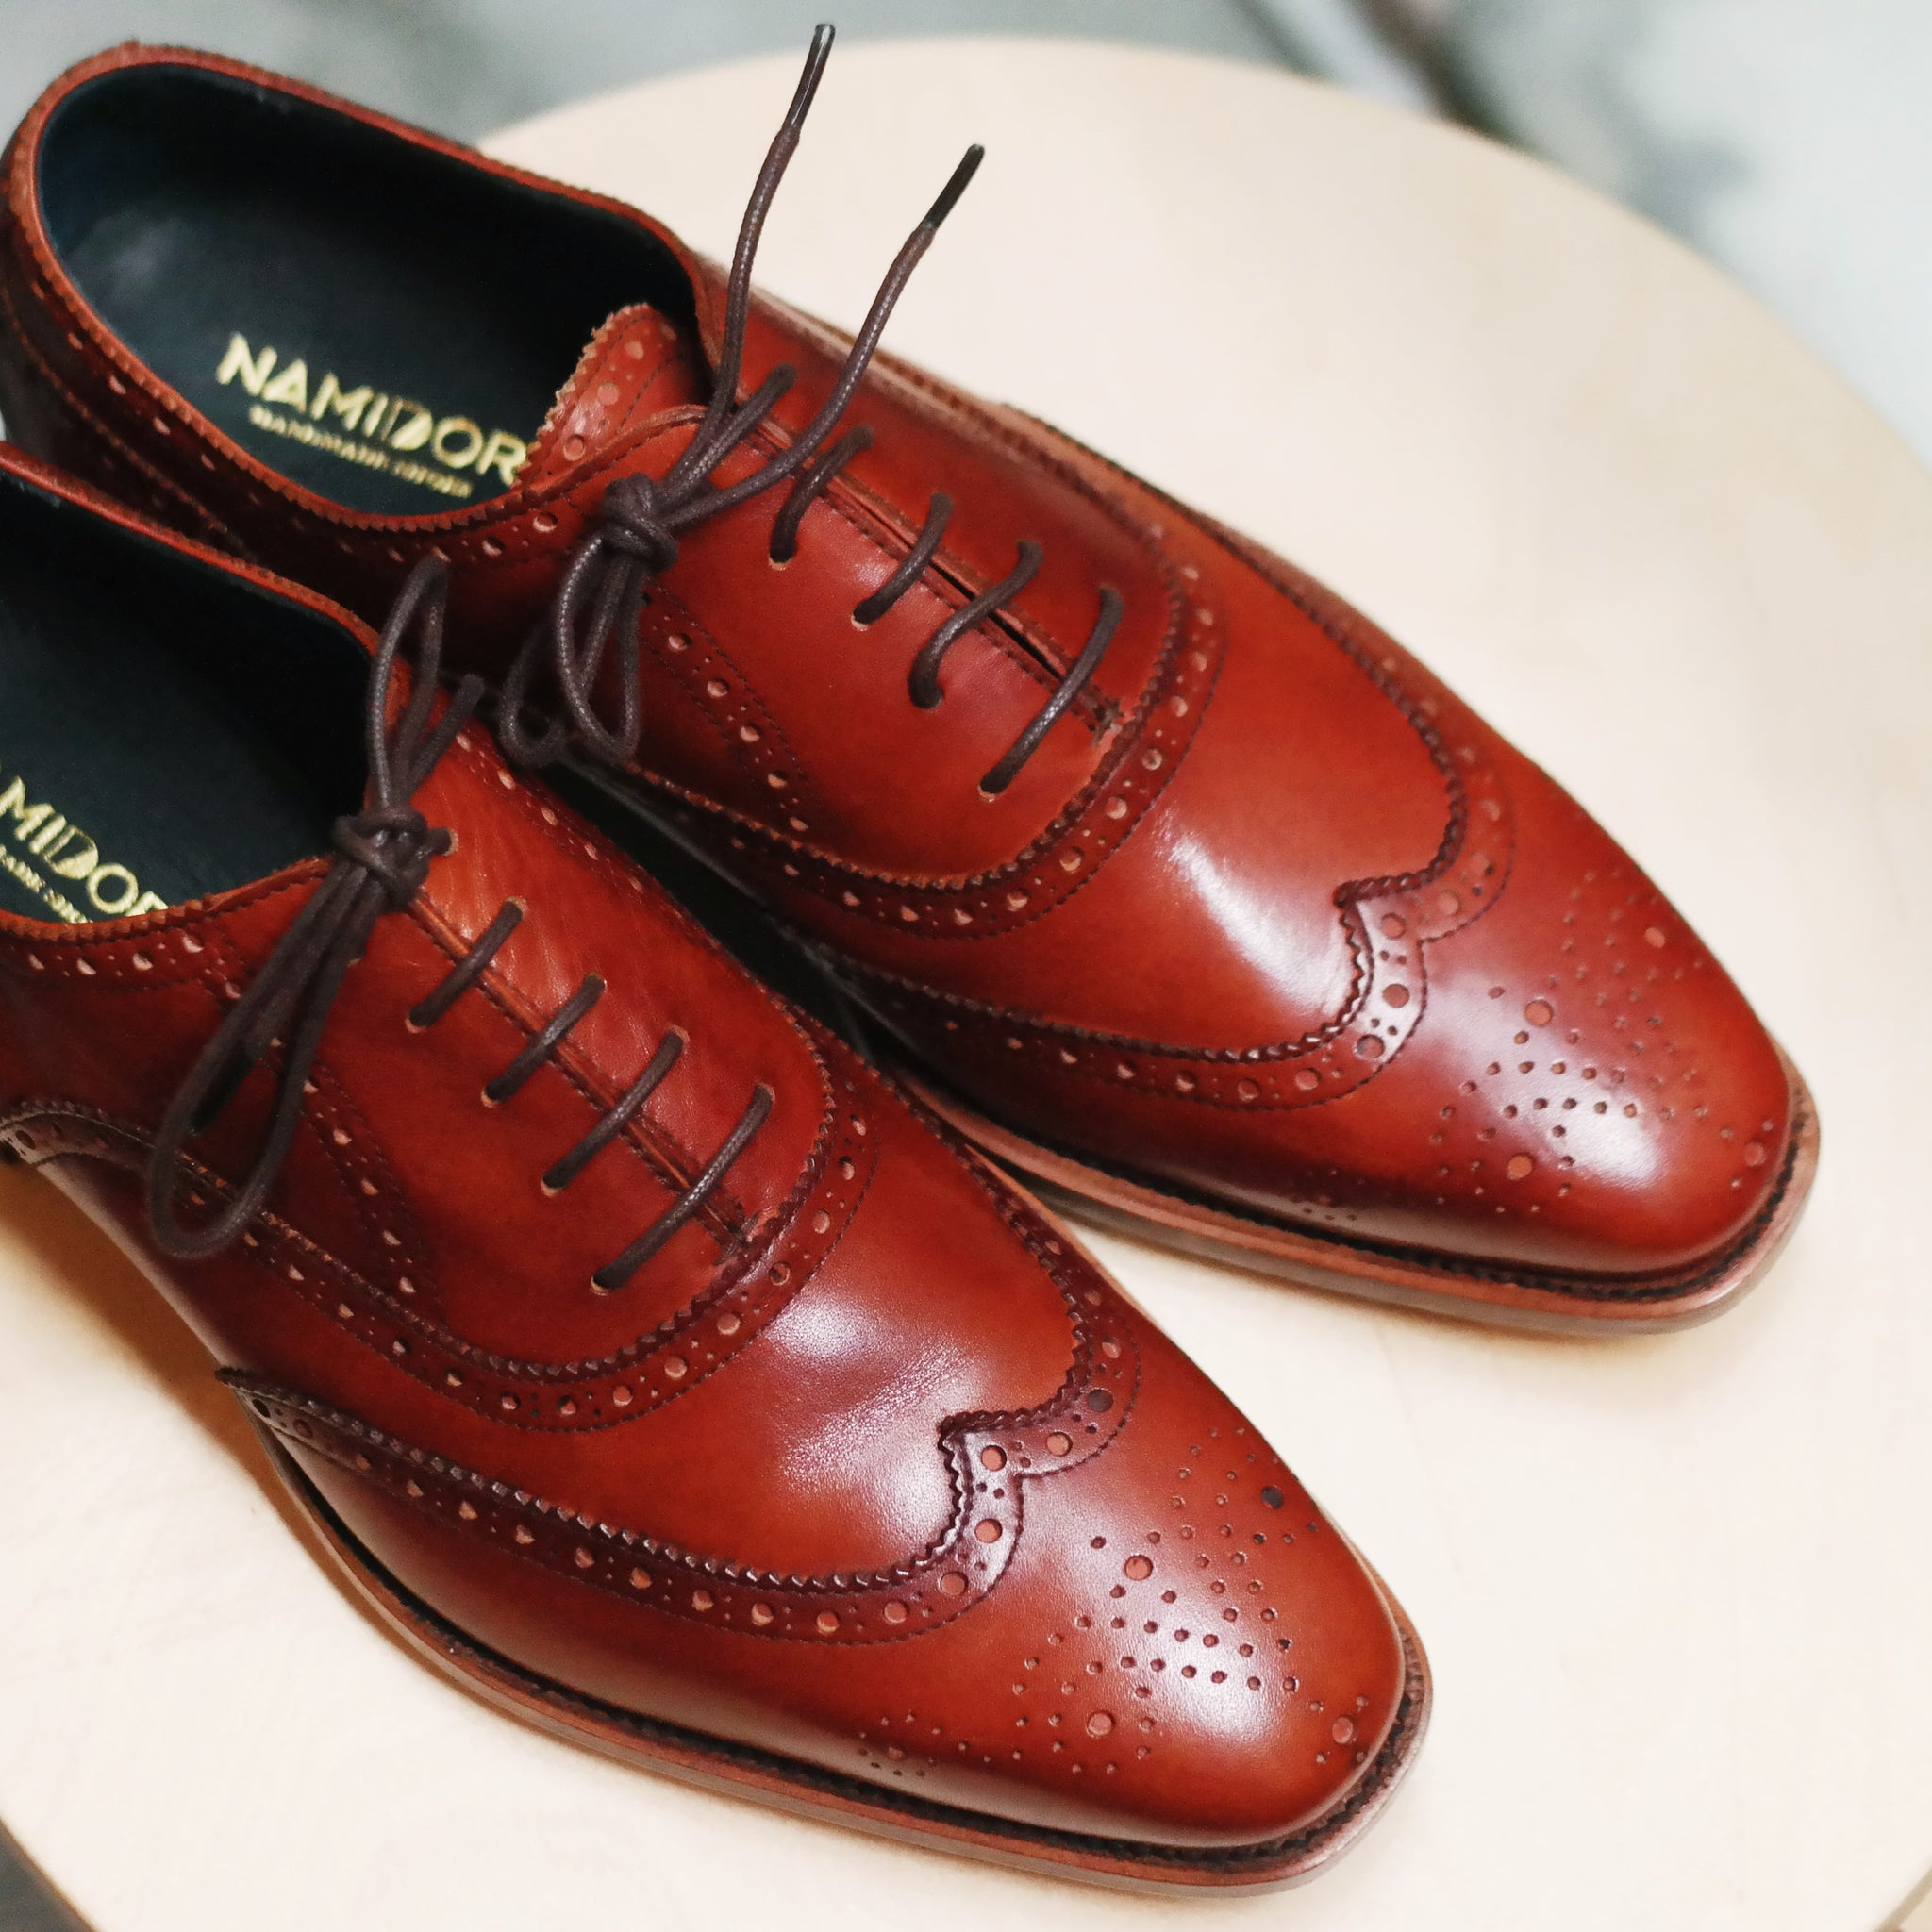 namidori singapore leather shoes brogue